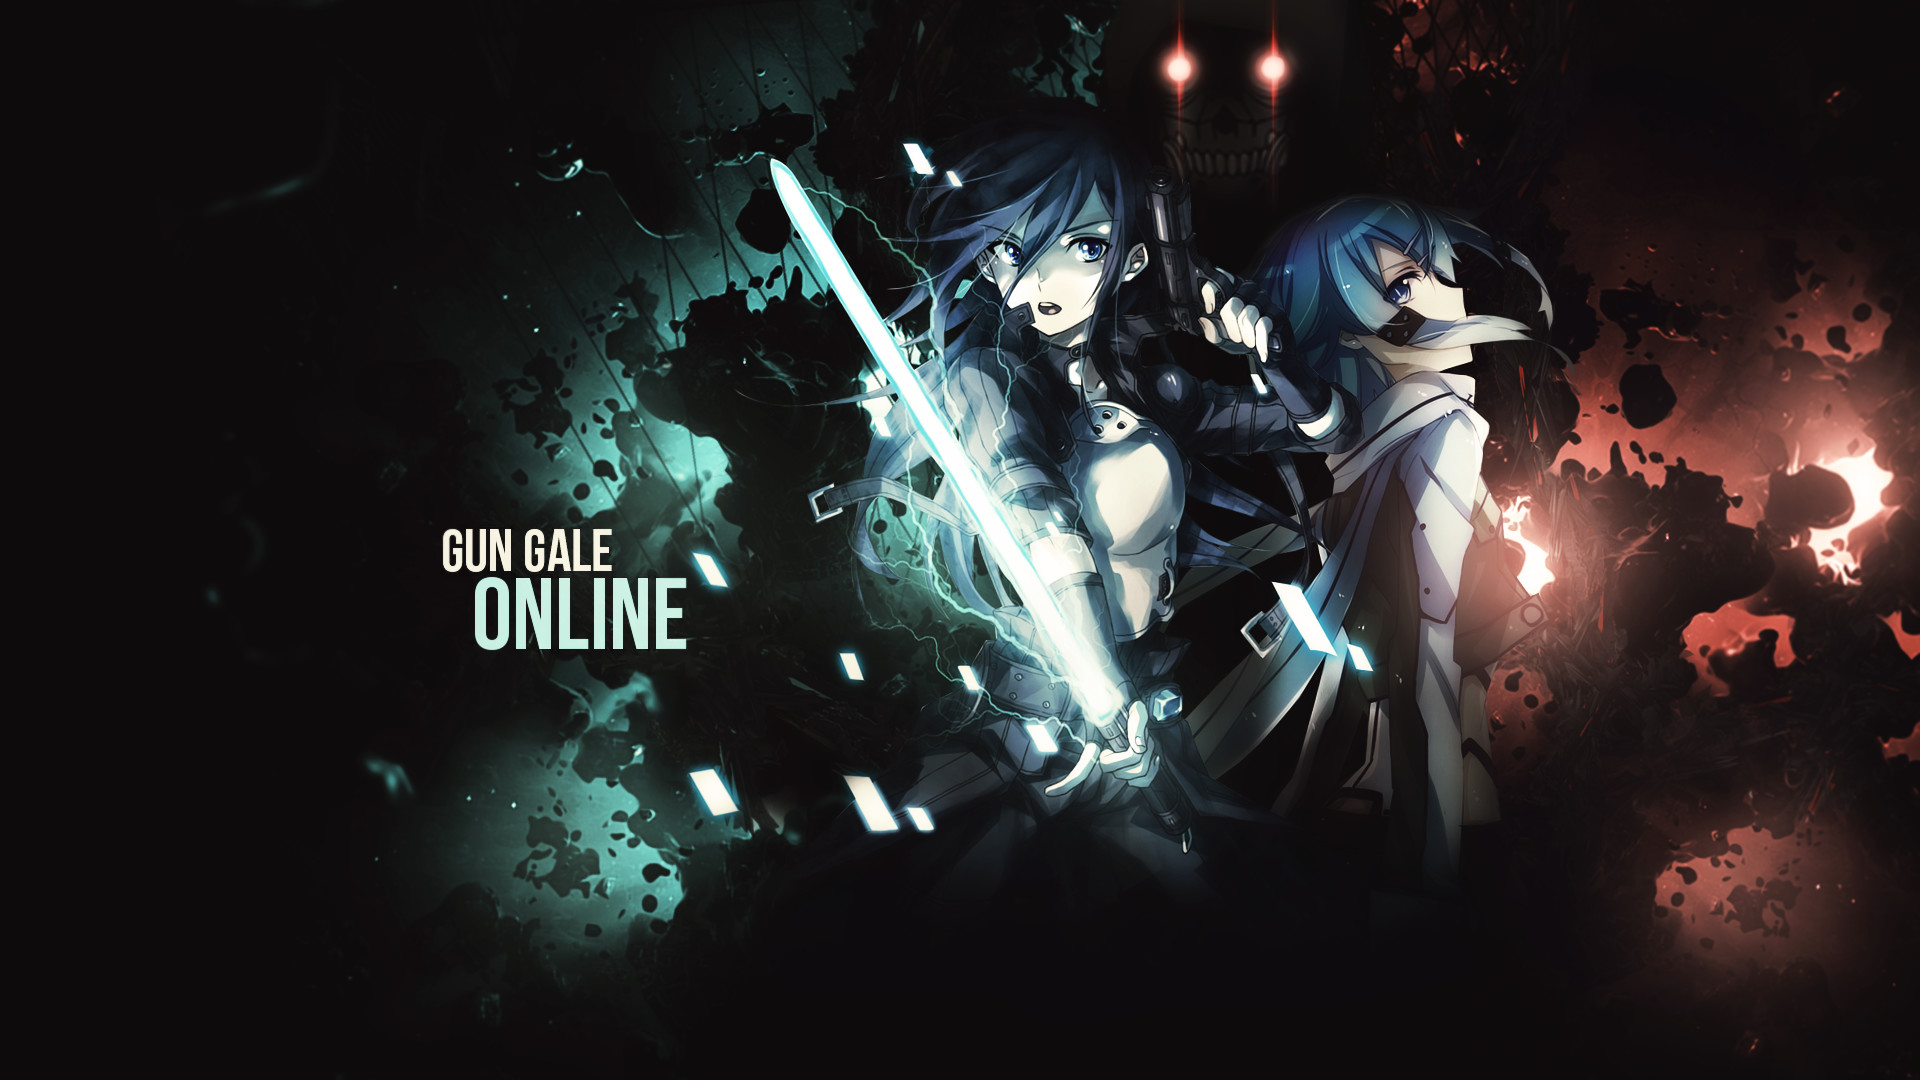 1920x1080 Anime - Sword Art Online II Death Gun (Sword Art Online) Sinon (Sword